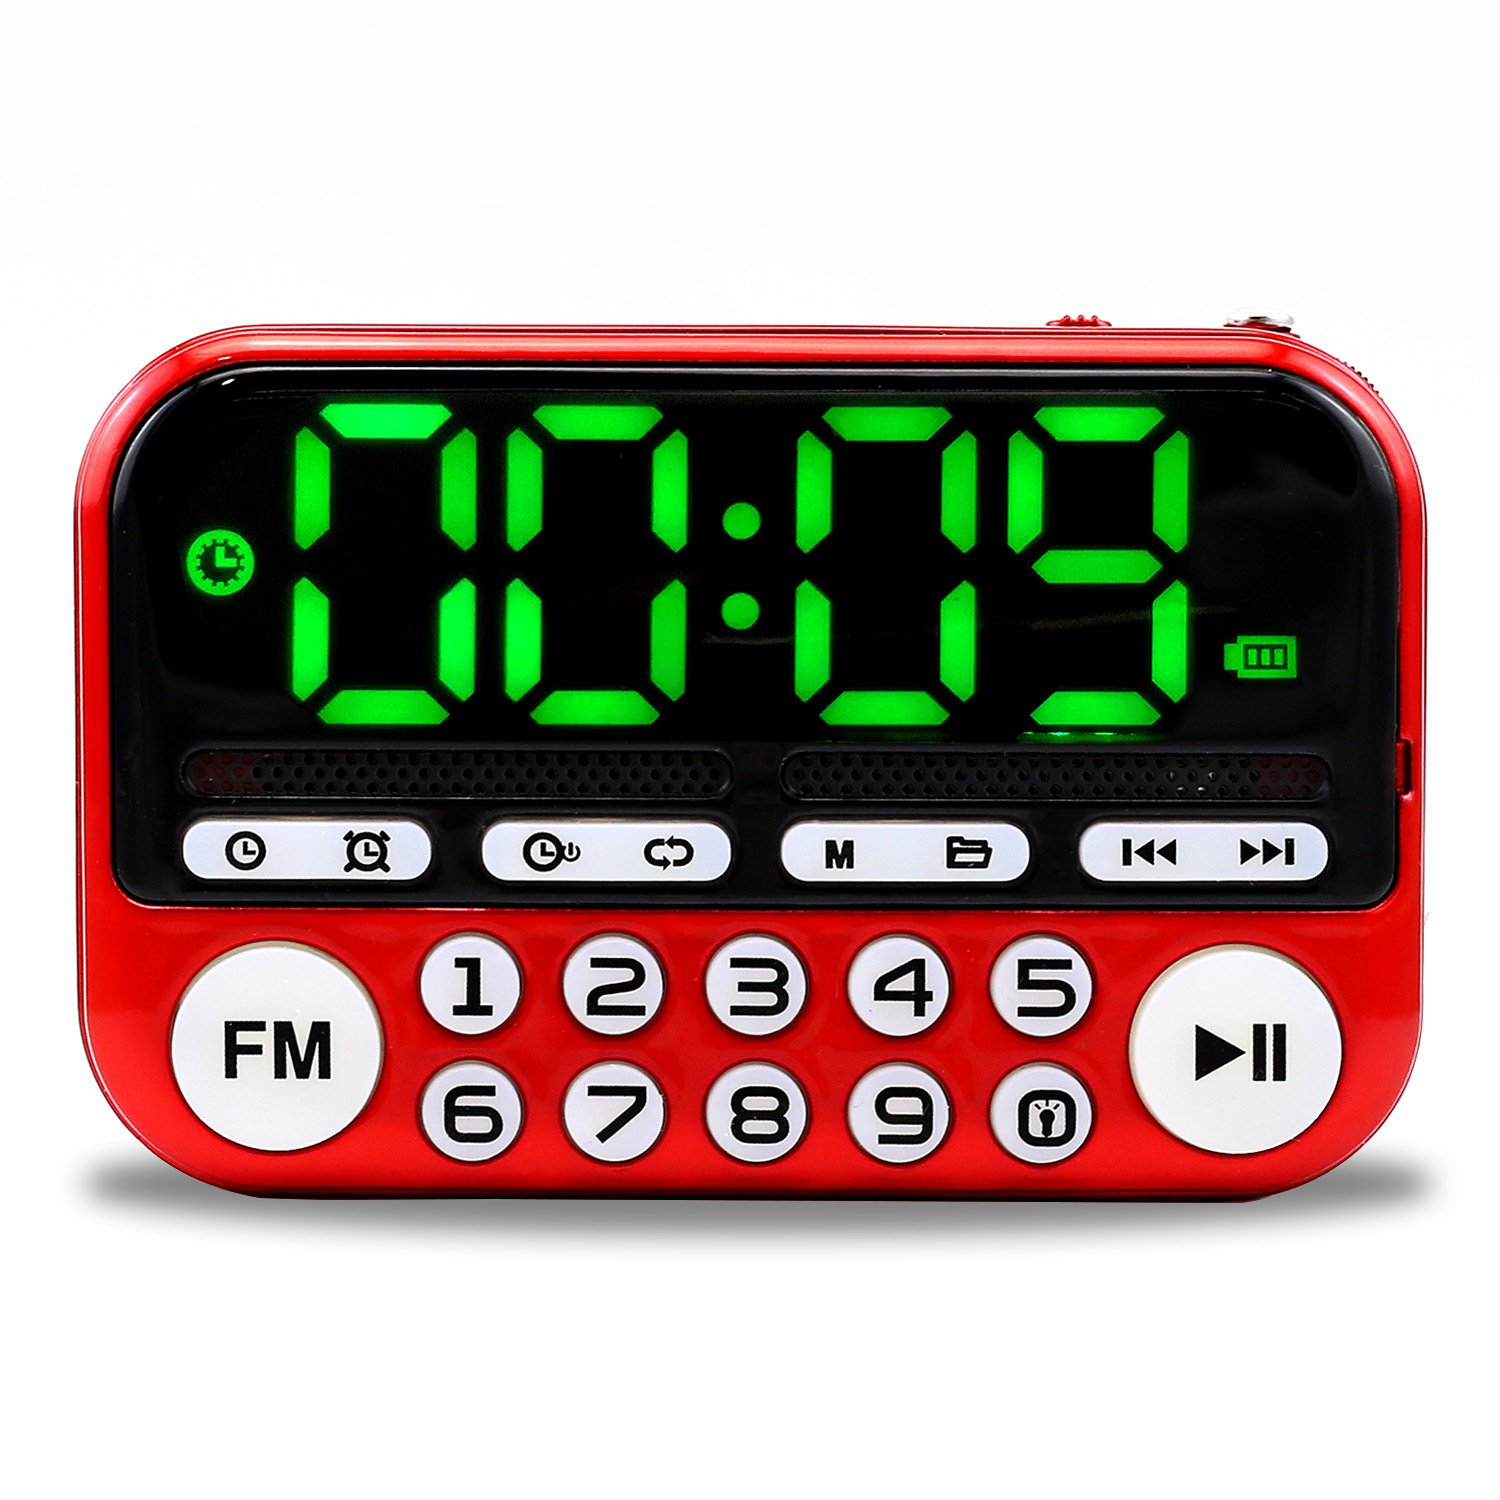 CHUNGHOP Portable Speaker Mini AM/FM Transistor Radio with MP3 Music Player Support Micro TF Card with Bg Buttons Luminous Alarm Clock (Red) Chargeable with USB Cable(Included)